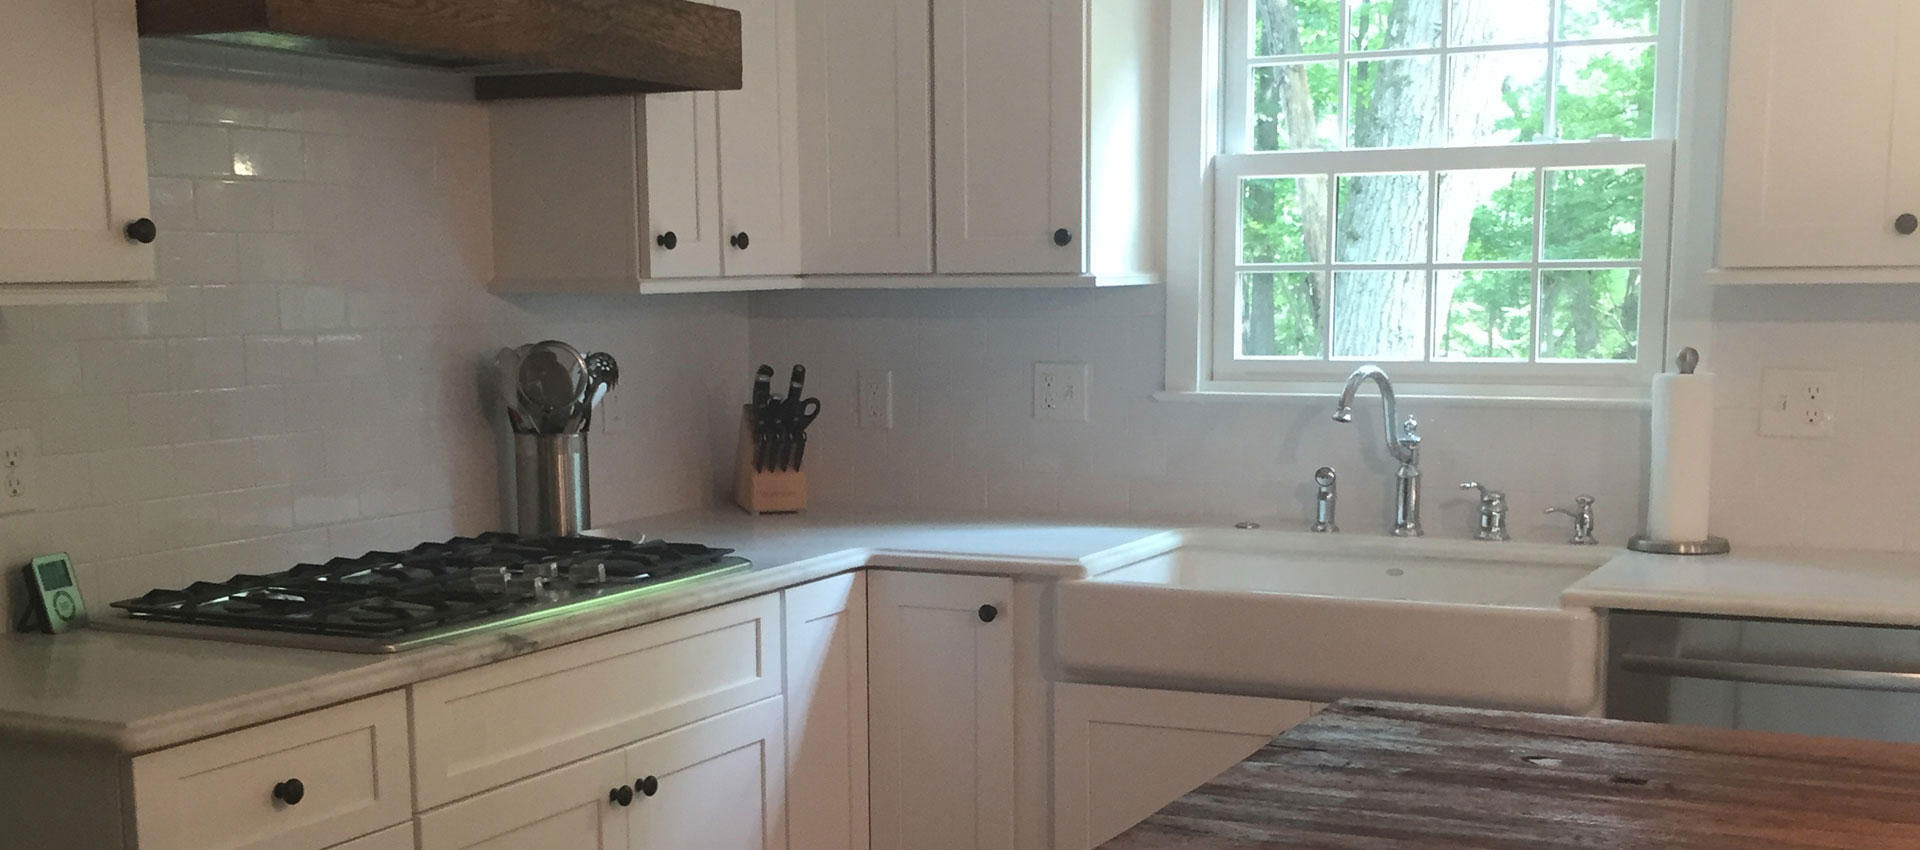 Kitchen Cabinetry Remodeling In Fairfield County Ct Lifestyle Kitchen Bath Design Llc